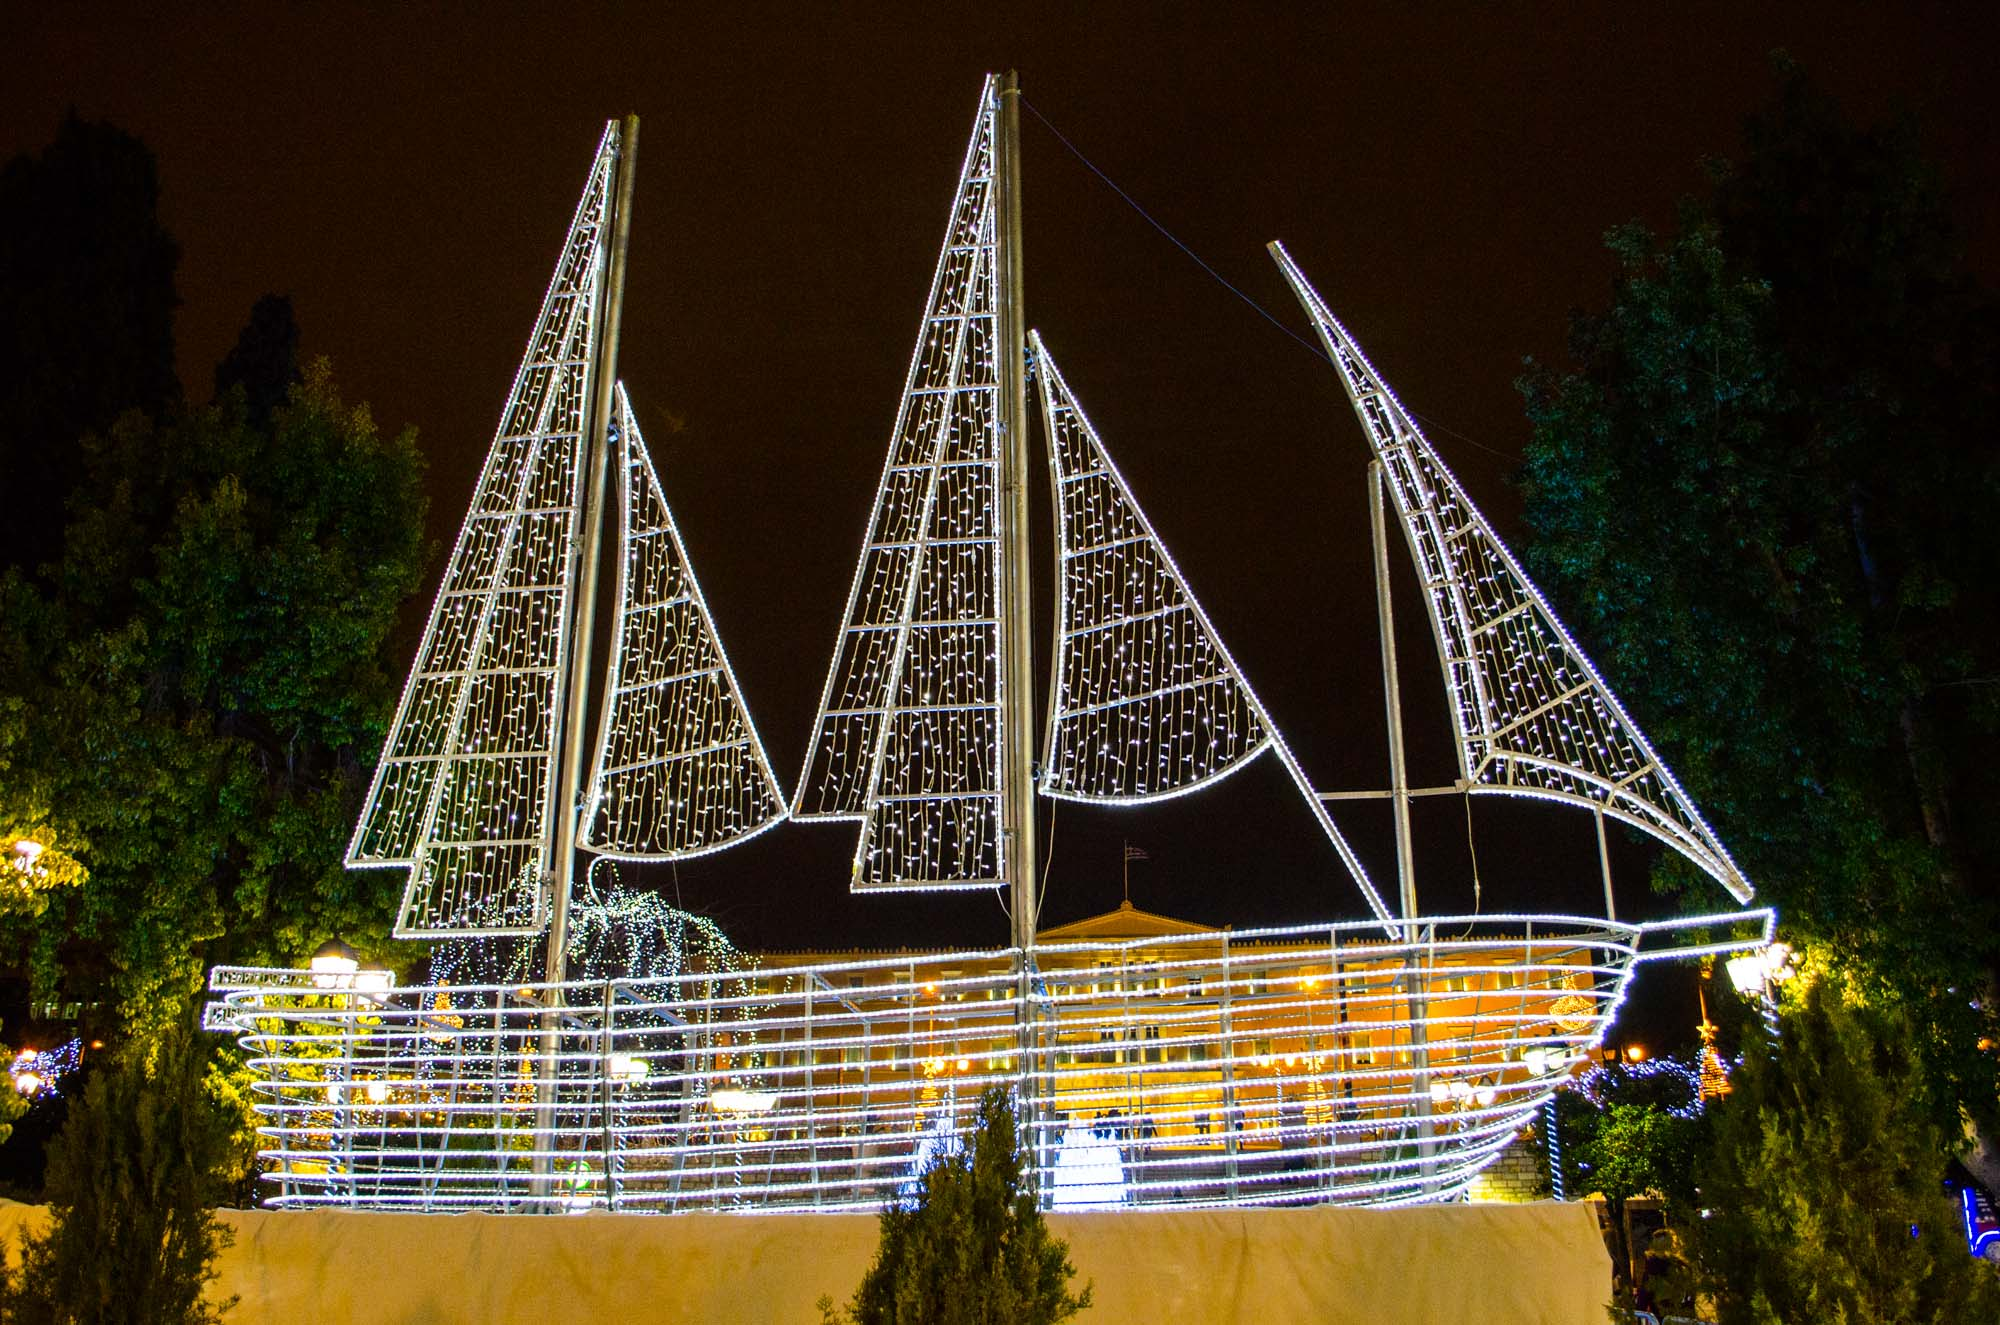 the greek christmas boat - When Is Greek Christmas